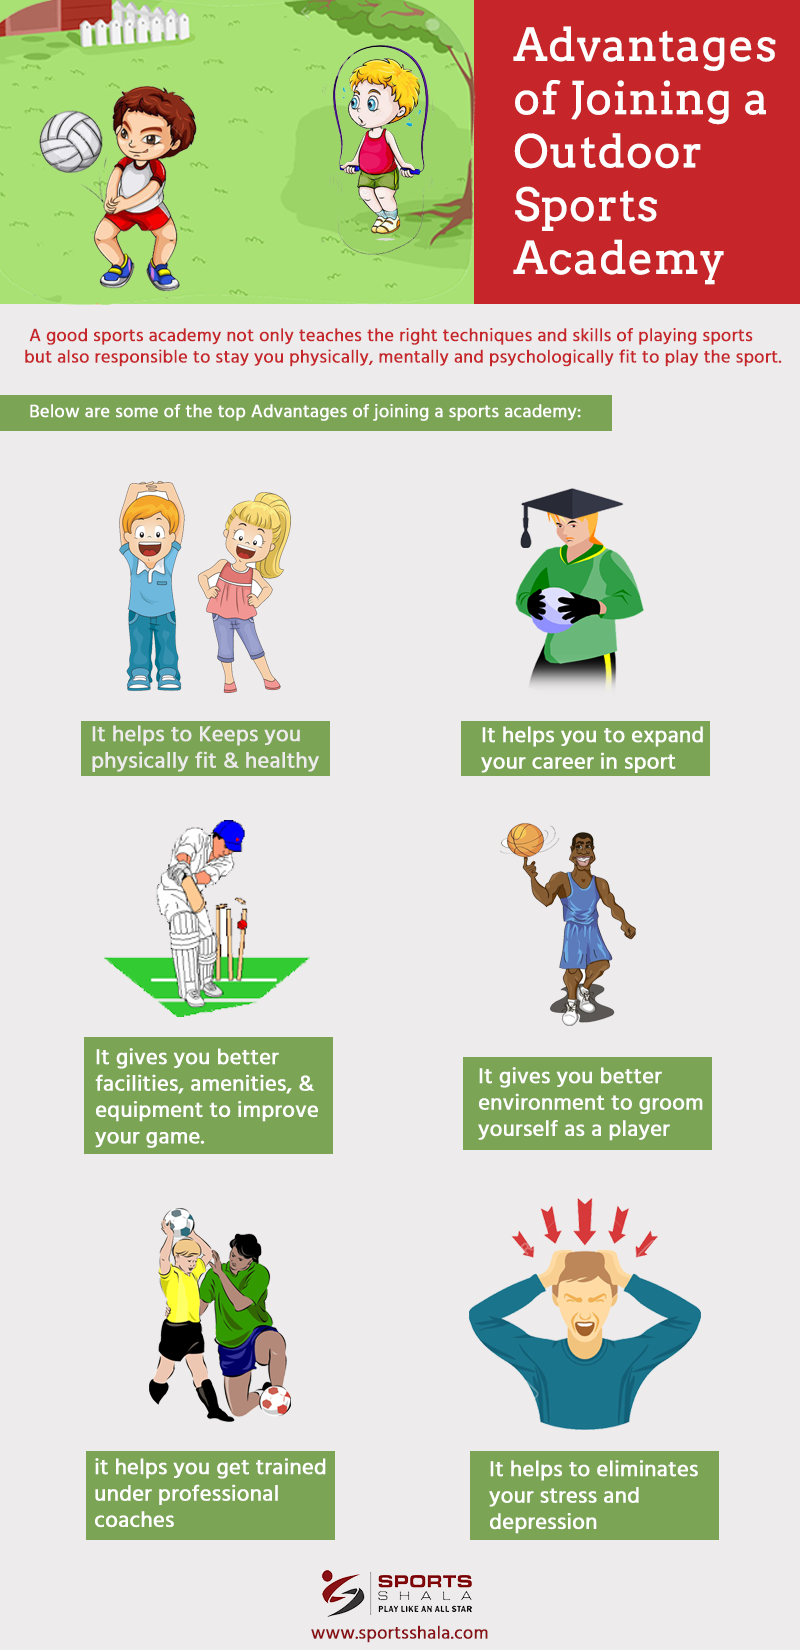 Advantages of Joining a Outdoor Sports Academy